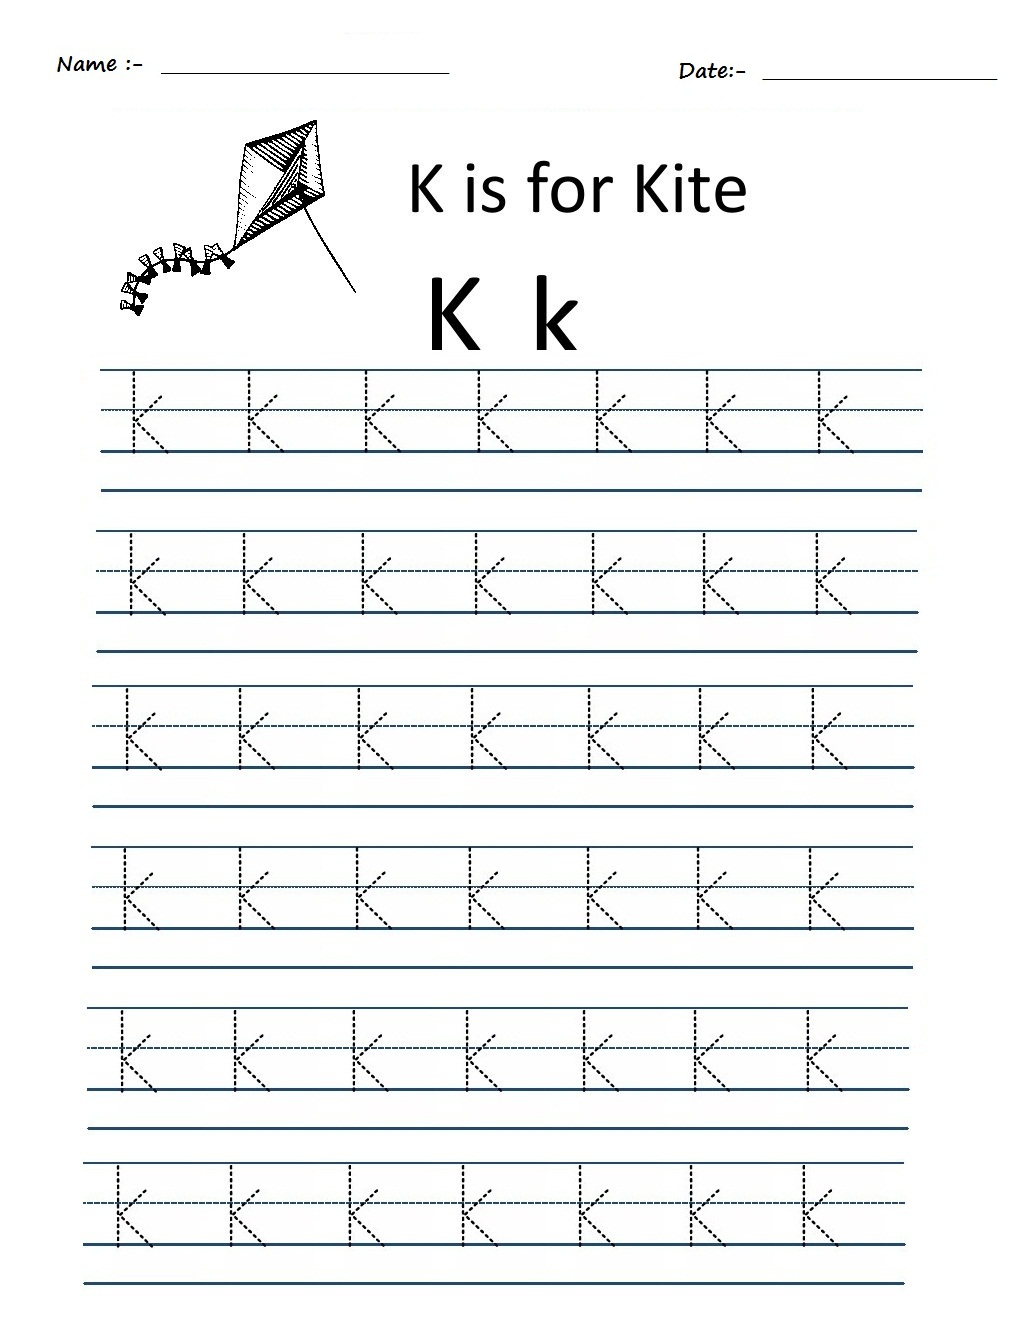 Kindergarten Worksheets: Alphabet Tracing Worksheets - K regarding Alphabet K Tracing